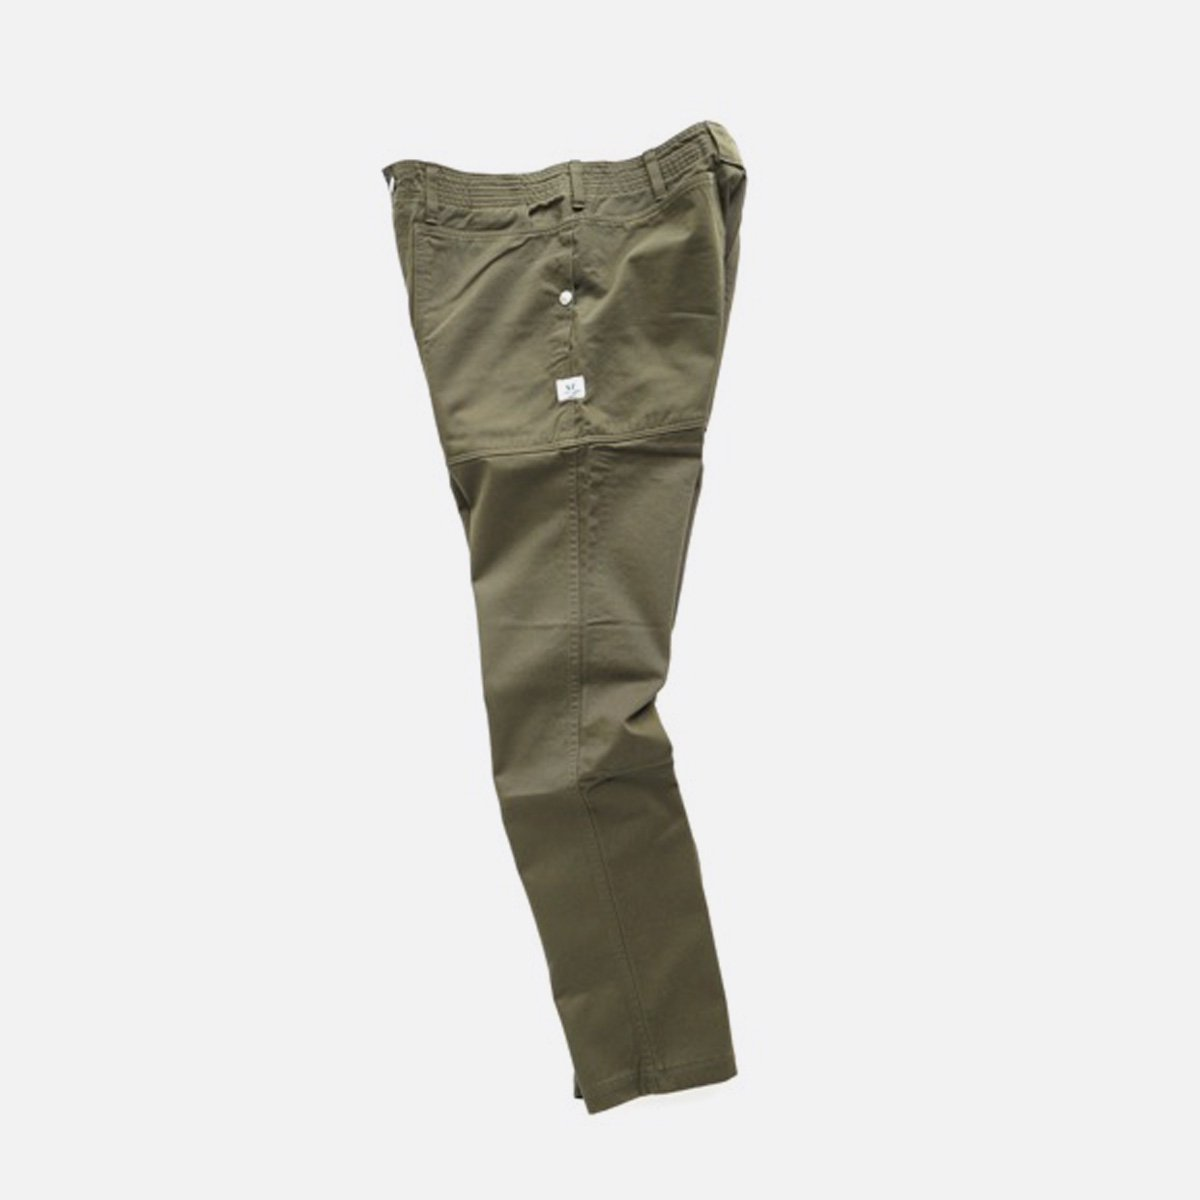 SASSAFRAS FALLLEAF SPRAYER PANTS CHINO (OLIVE)3